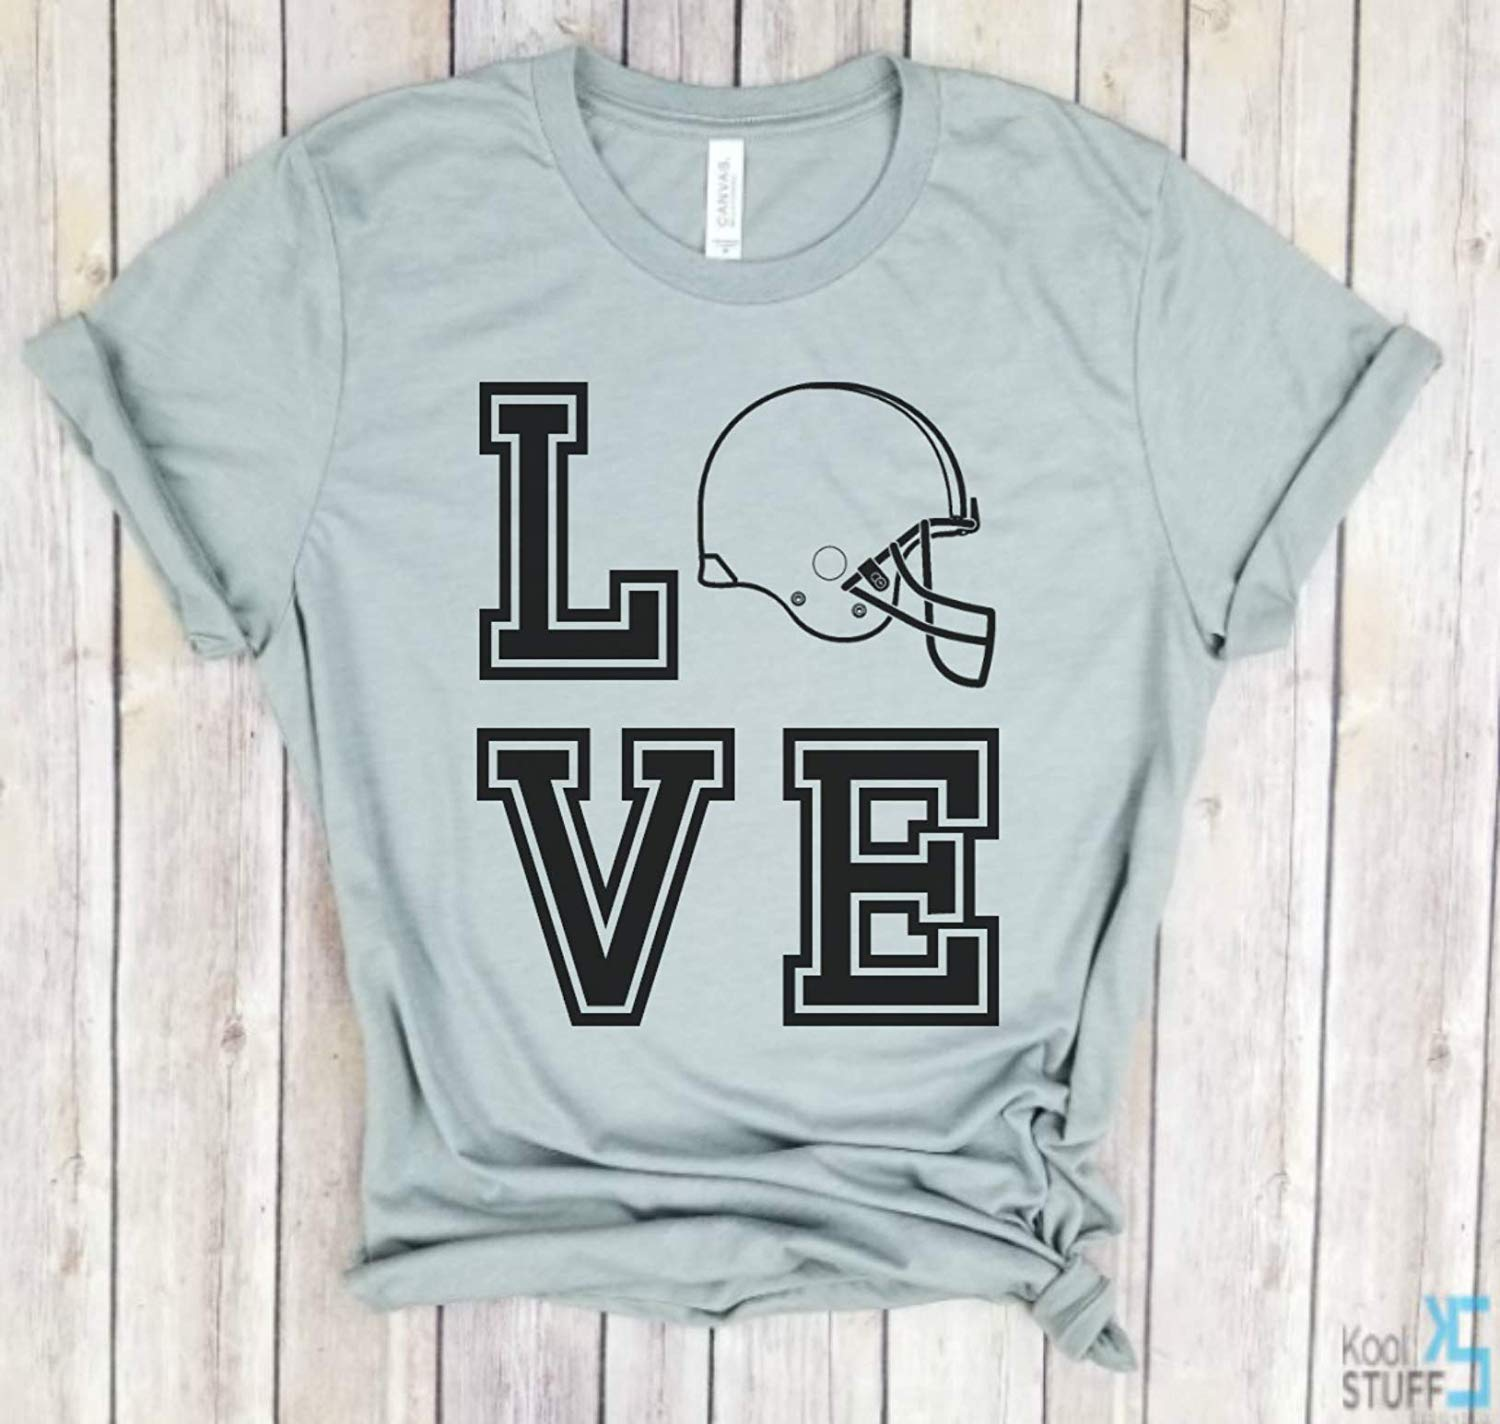 love Football, Helmet, Football Shirt, Game Day Shirt, Laces, Football Tshirt, Football Sunday Shirt, Football Season, Sunday Funday, sorority game day shirt